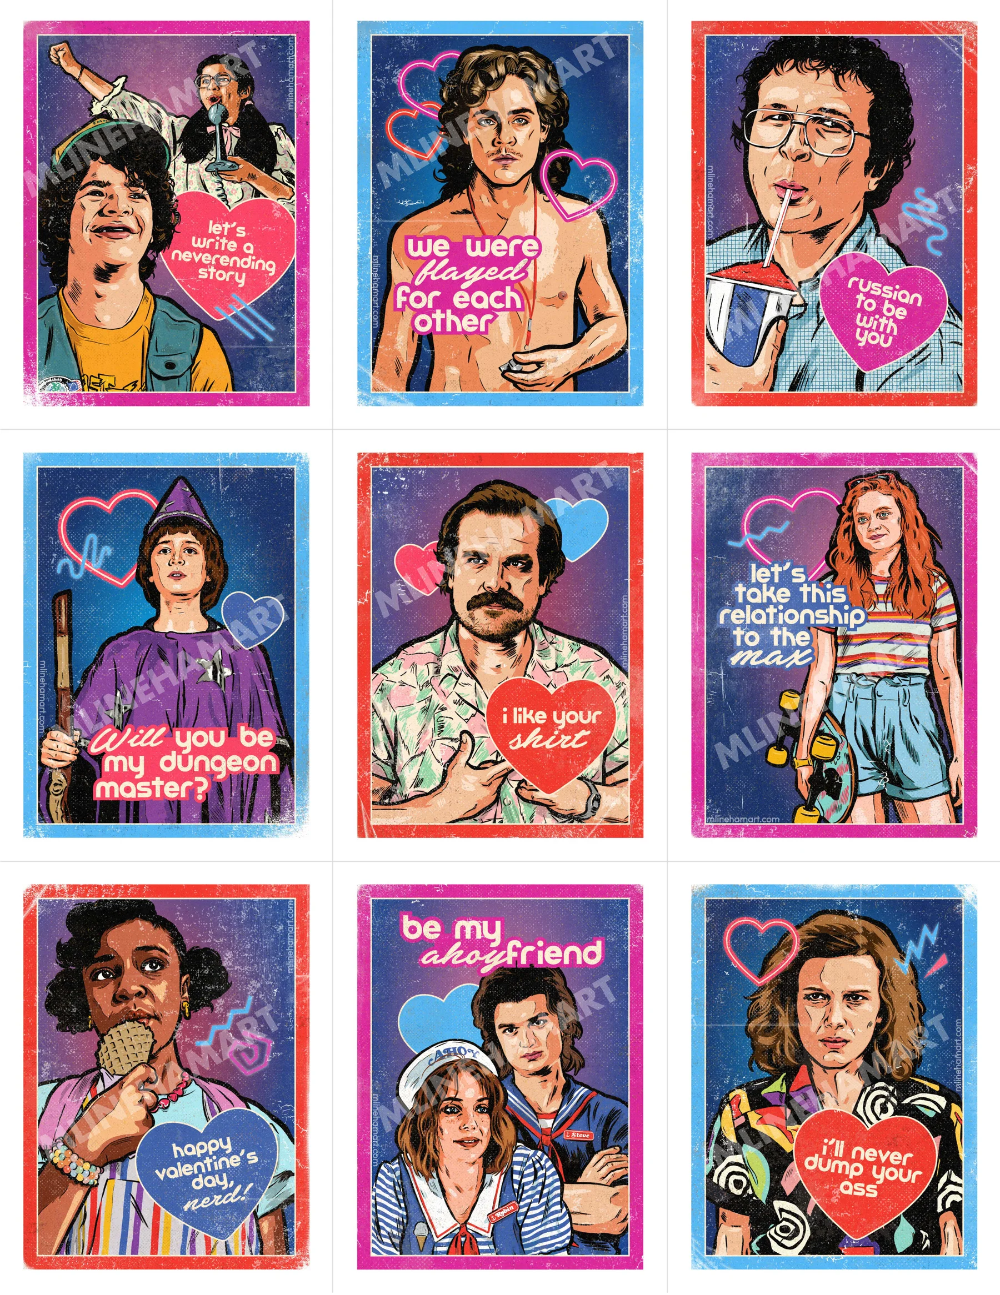 Stranger Things 3 Valentine S Day Card Pack 2020 Stranger Things Kids Stranger Things Poster Stranger Things Funny